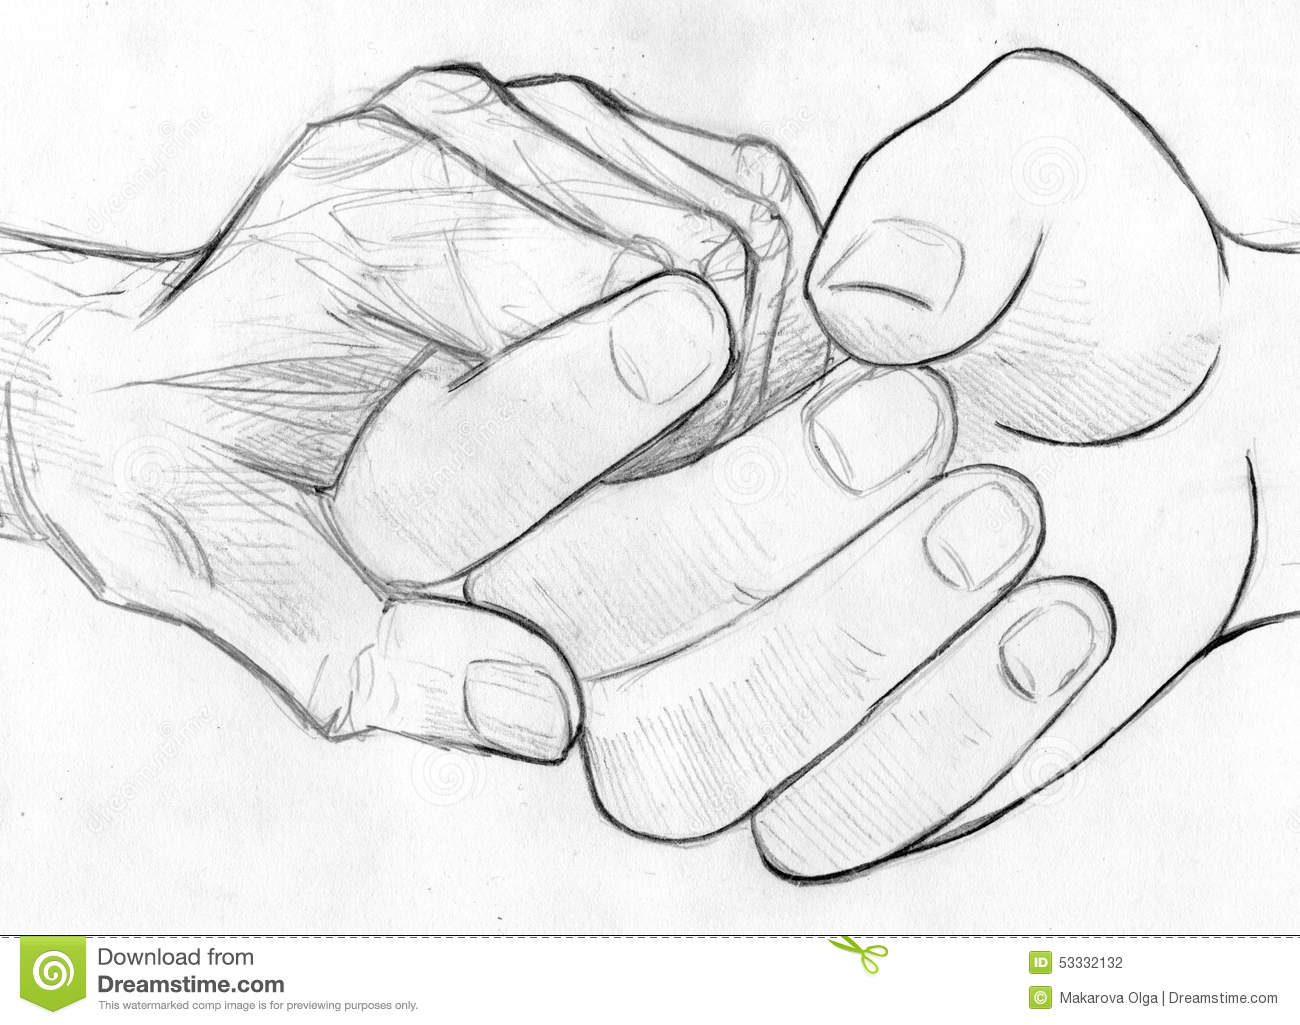 drawn pencil sketch of two hands - one young and one old - holding    Holding Hands Love Sketch